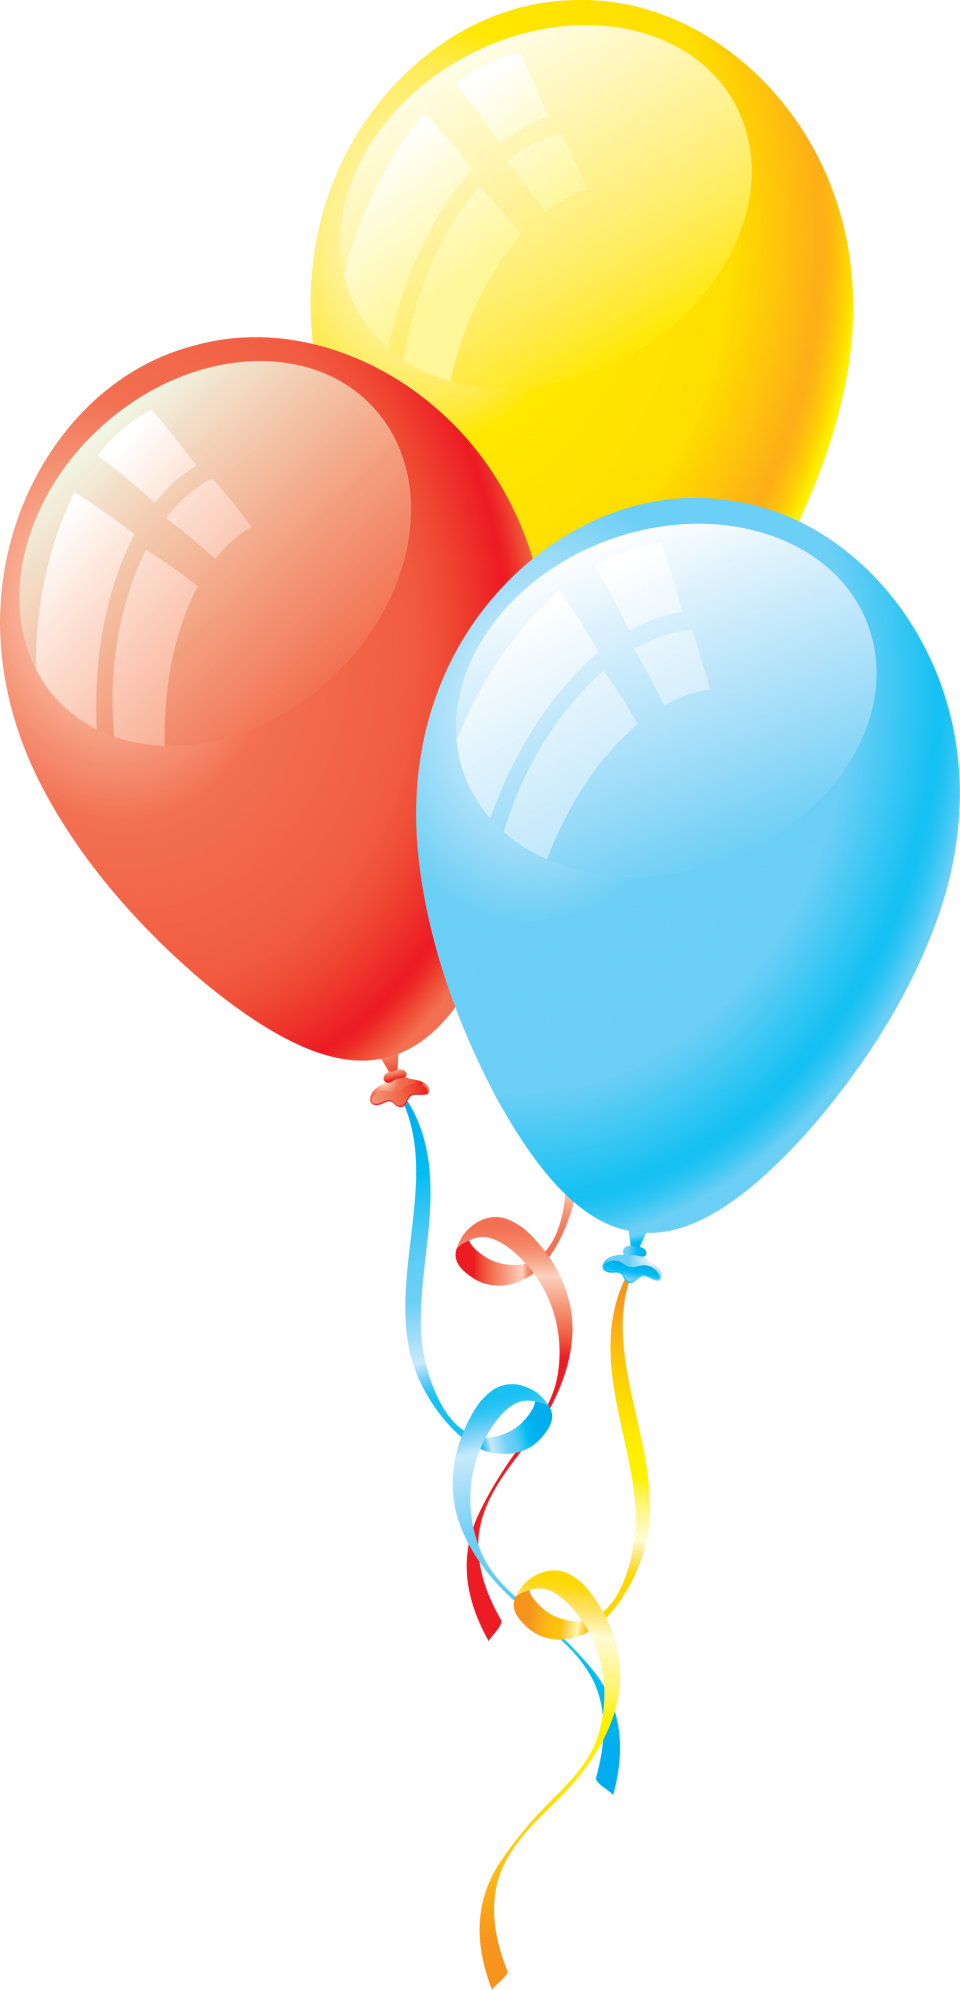 Celebrative Birthday Balloons PNG Image